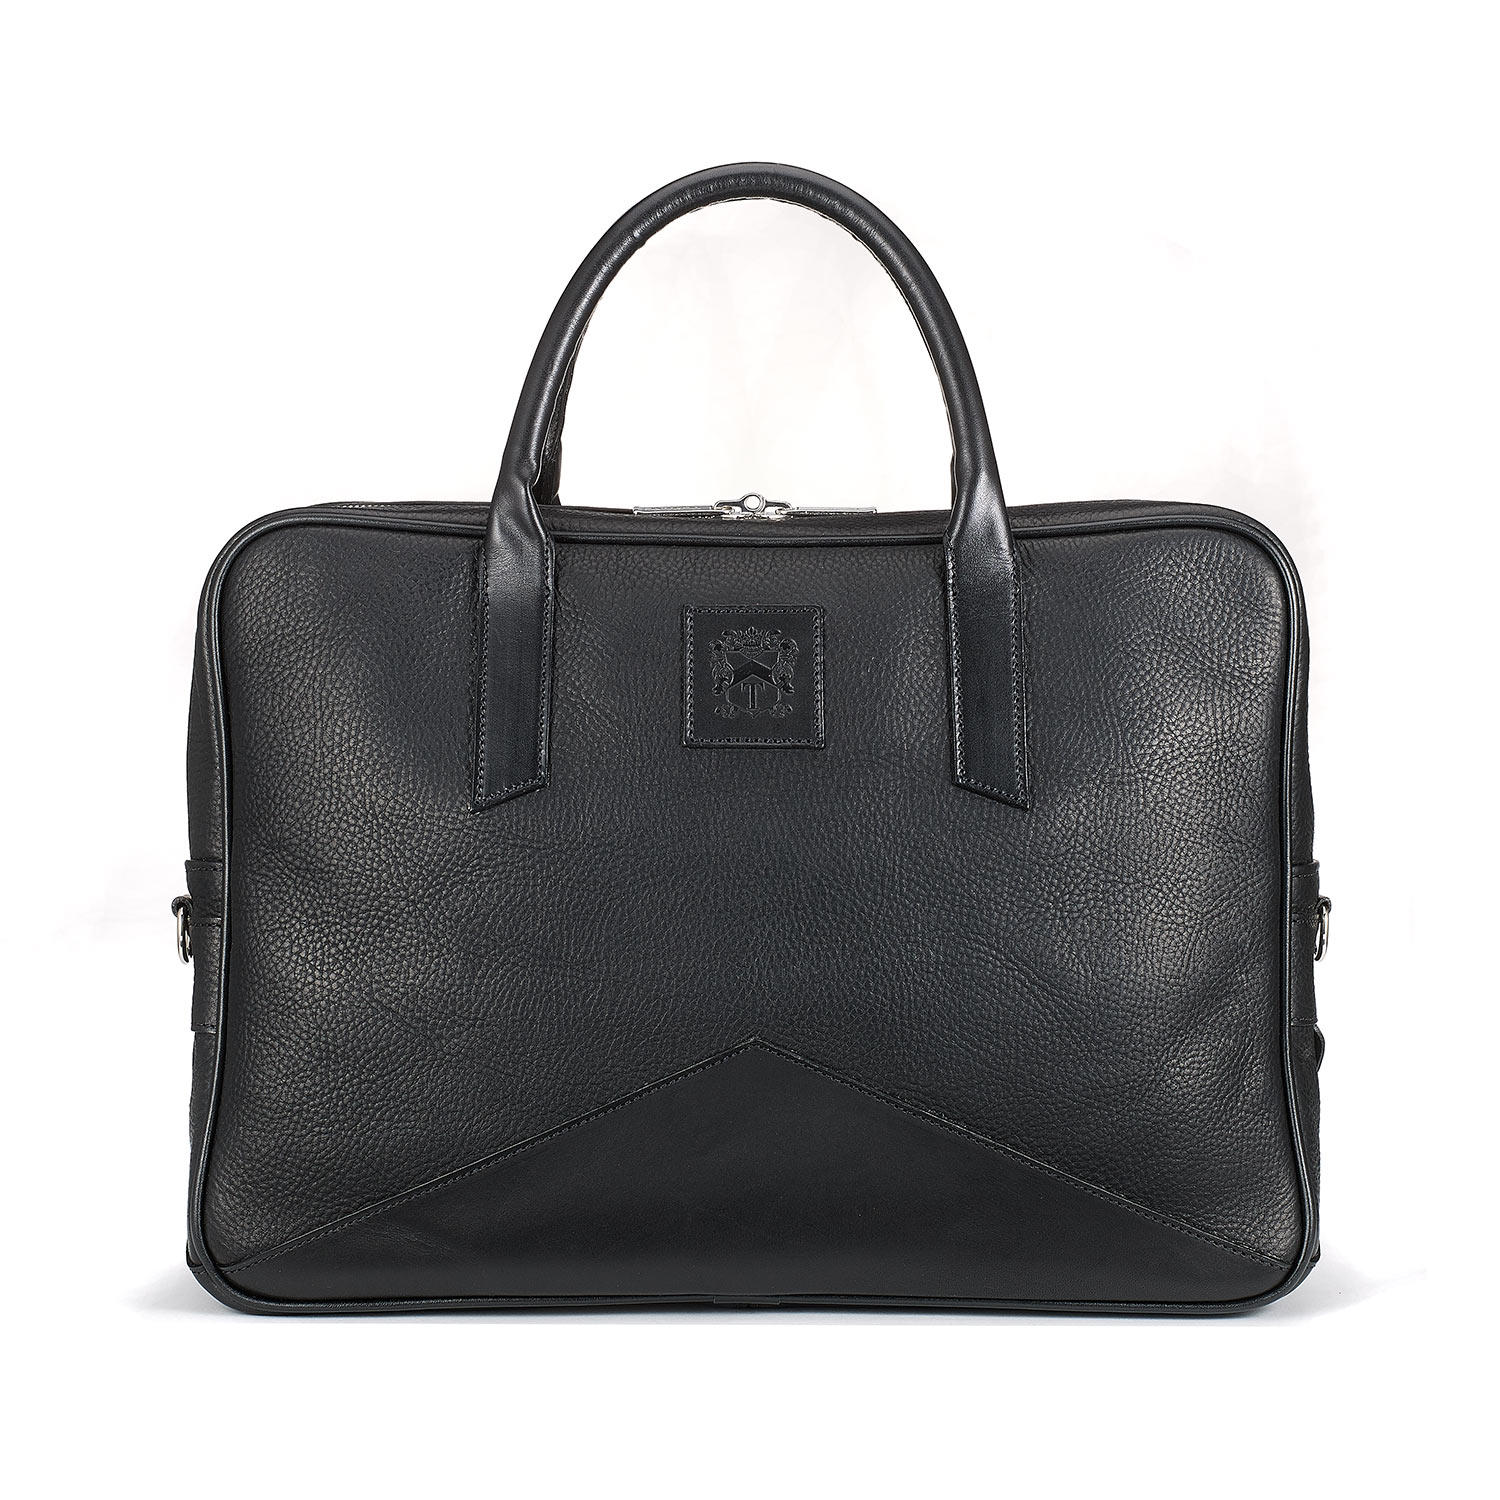 Tusting Black Langford - a modern English leather briefcase